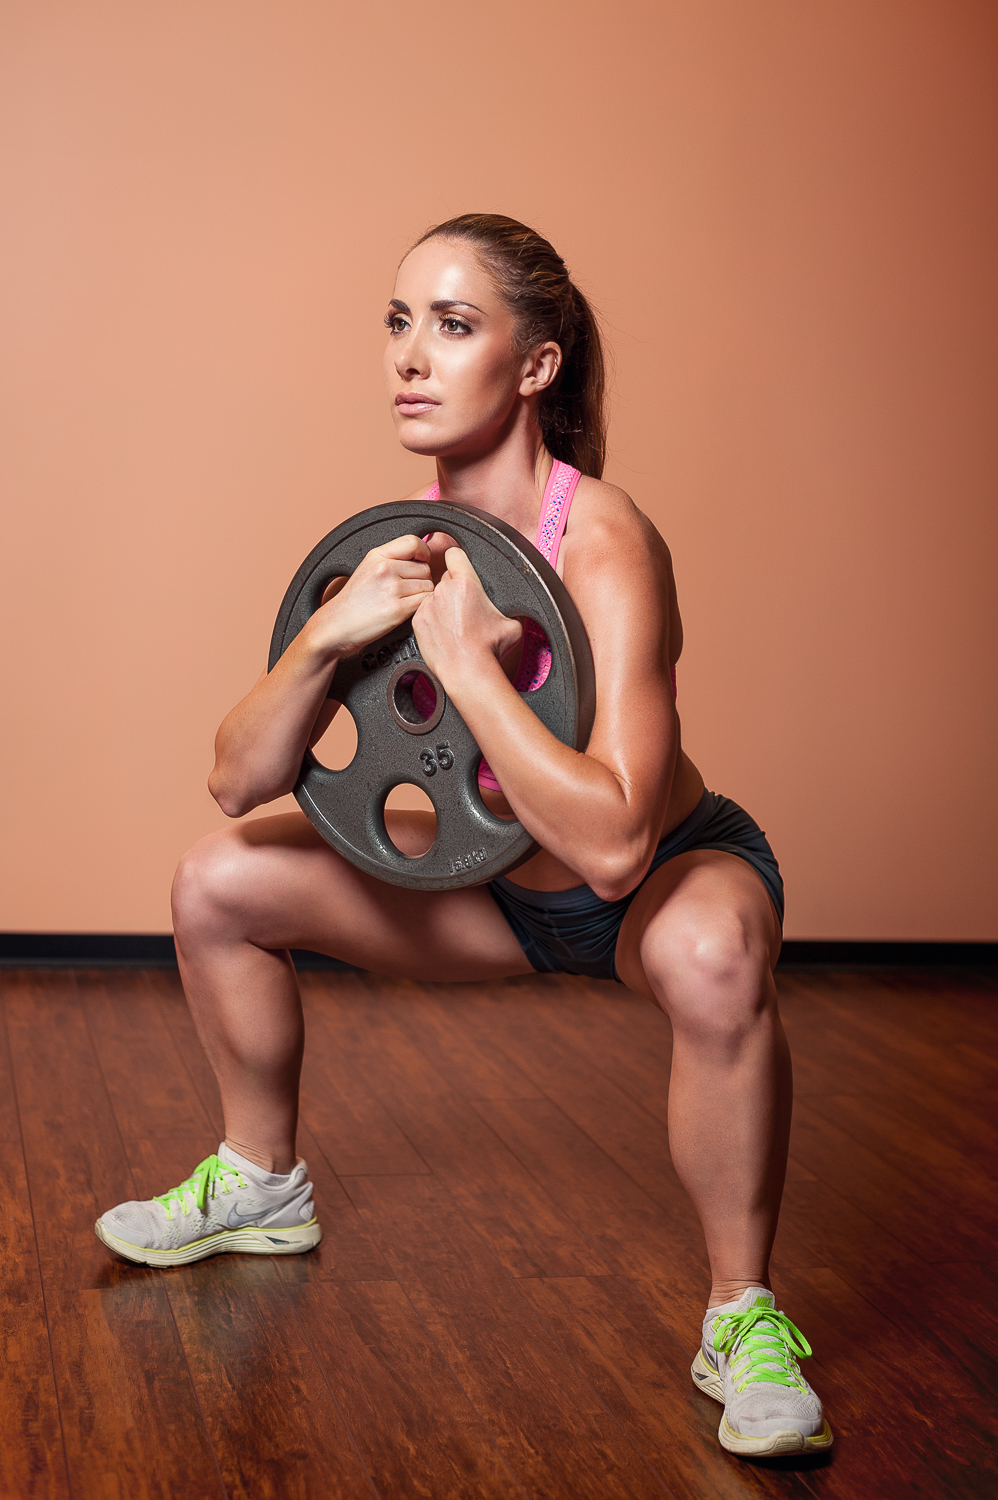 Hamilton Toronto Fitness Photographer - Marek Michalek - squat workout.jpg